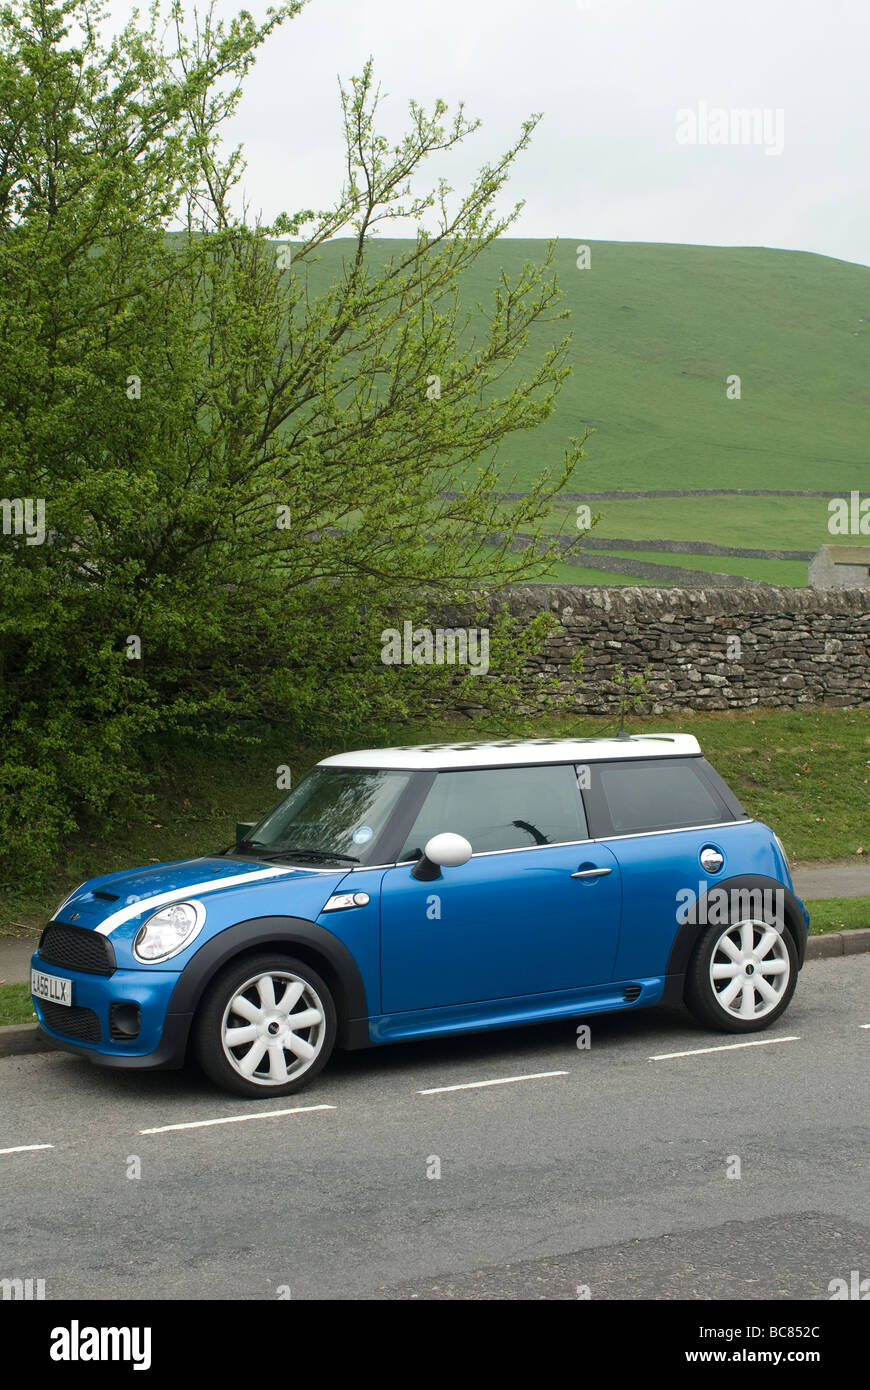 Blue mini cooper s car parked at the side of the road in a village in the English countryside - Stock Image